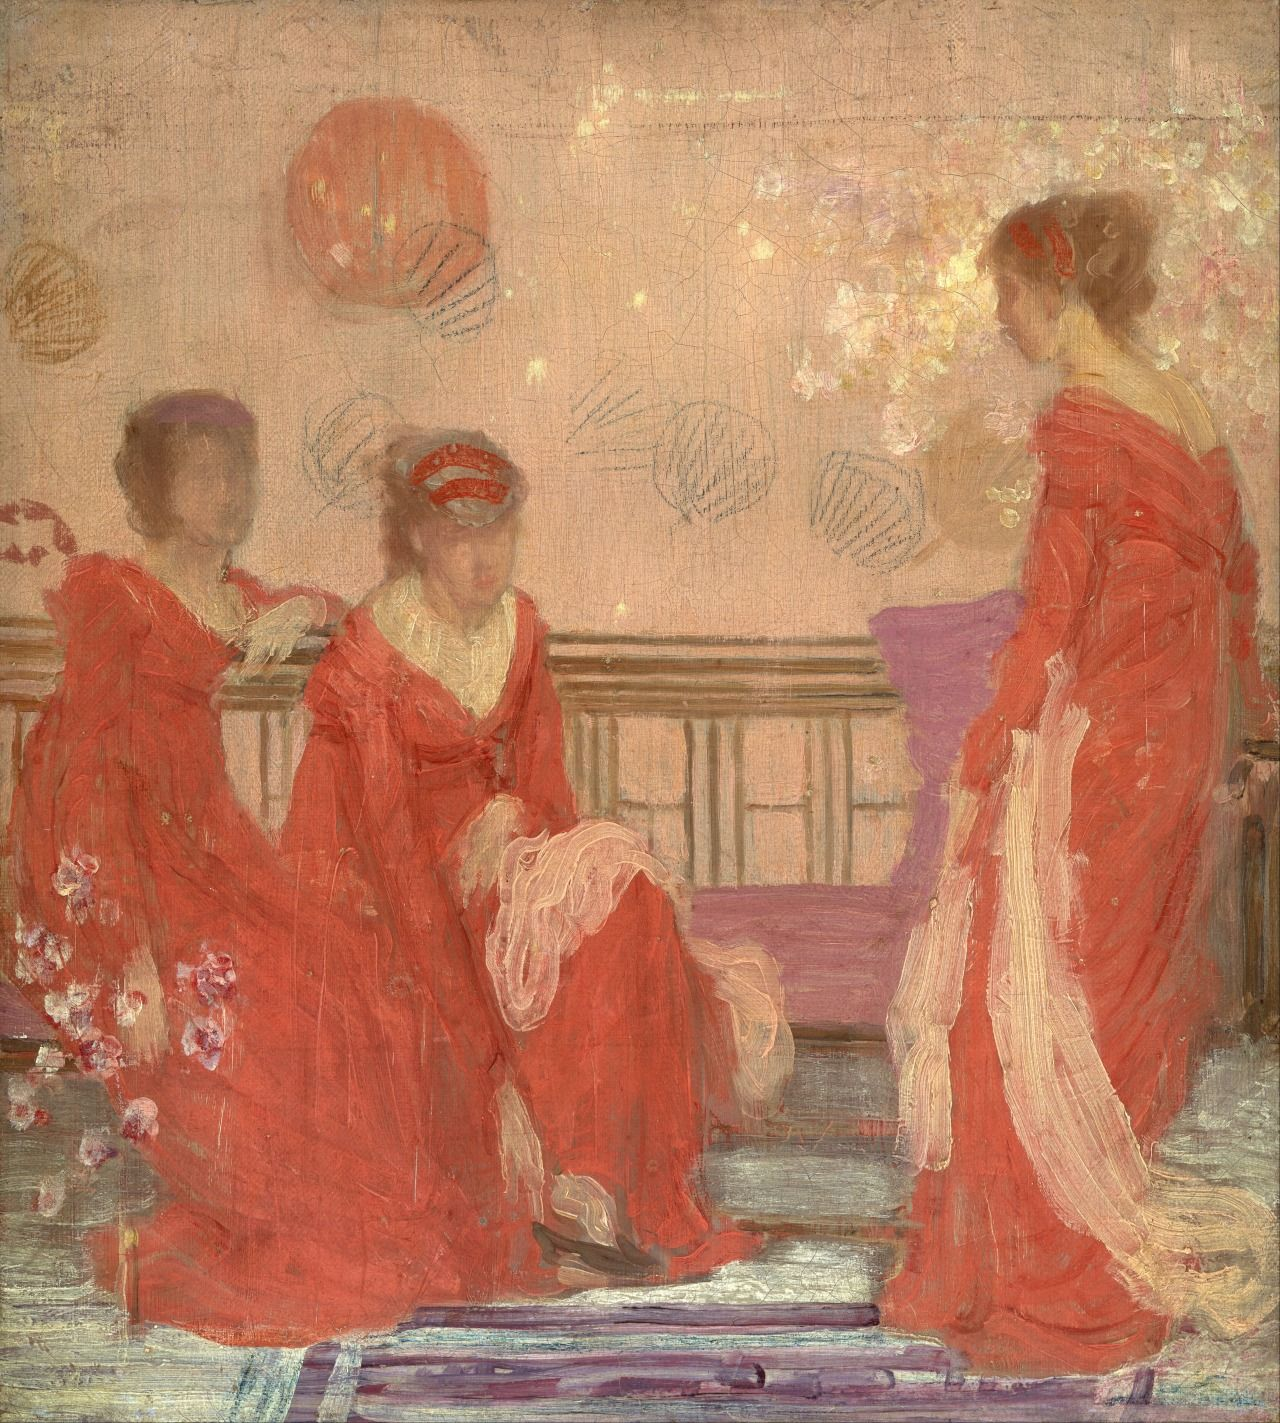 James Abbott McNeill Whistler (1834-1903) - Harmony in Flesh Colour and Red